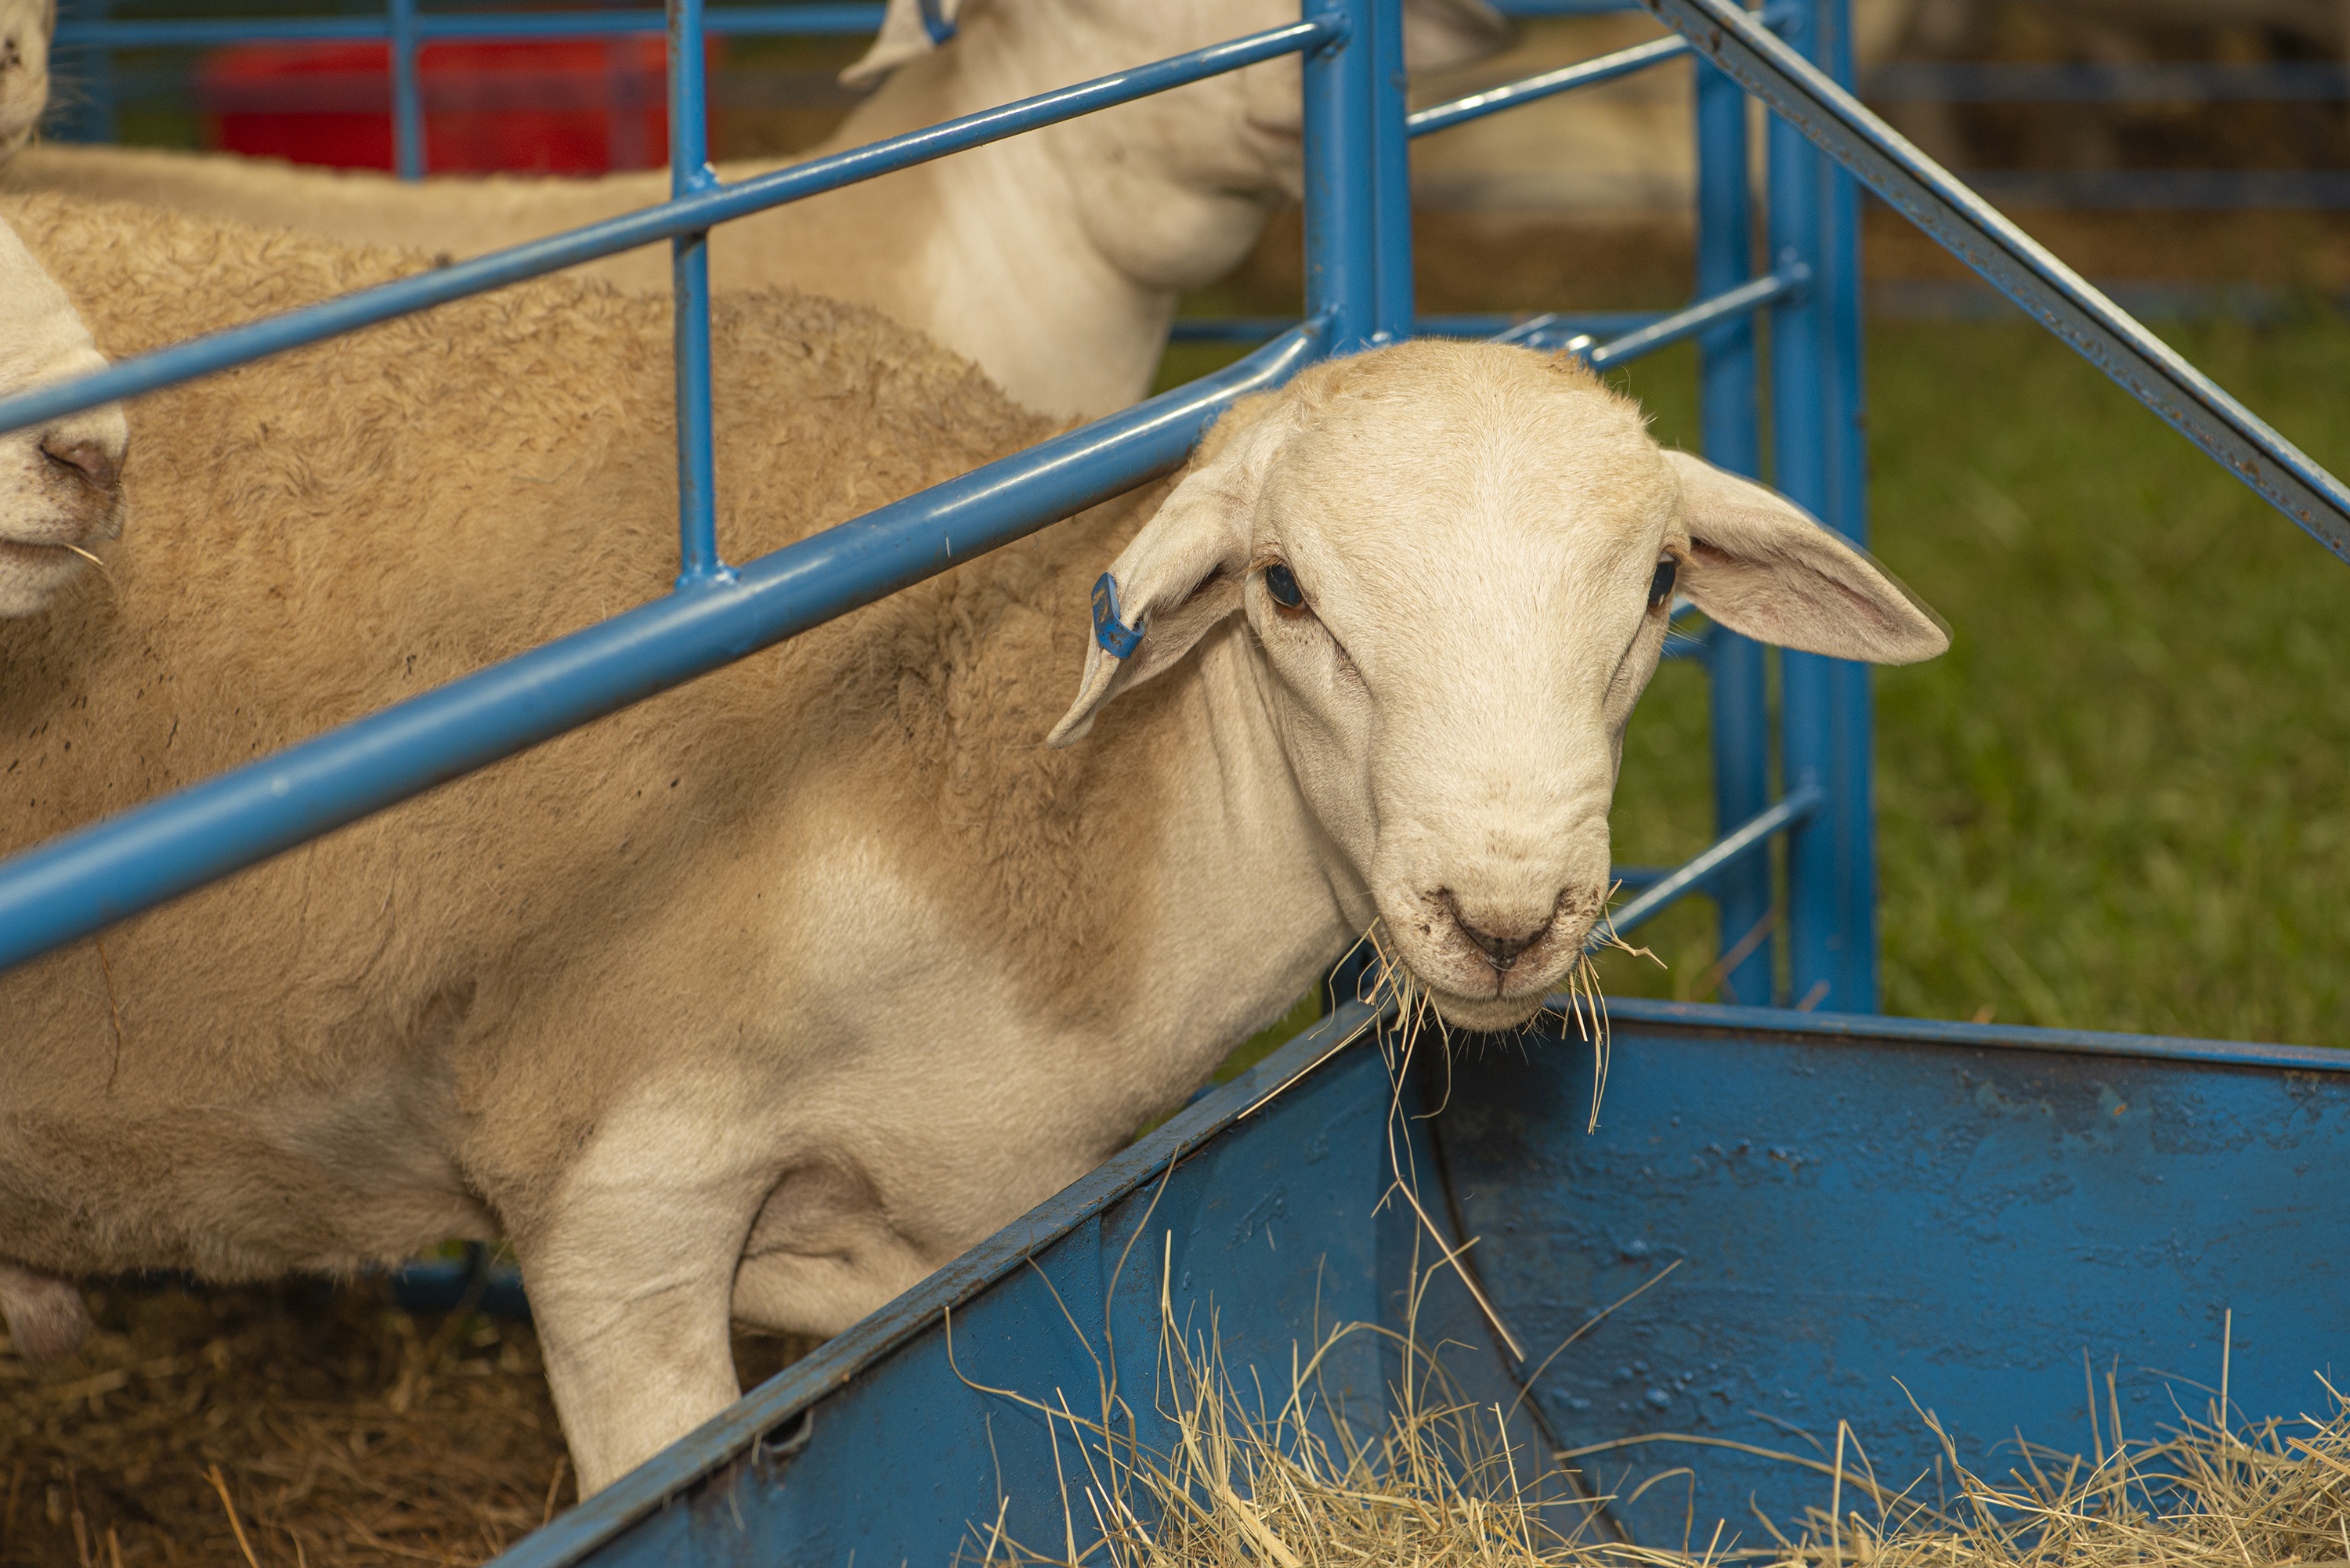 Alabama farmer introduces Australian White sheep to farmers from all over the world